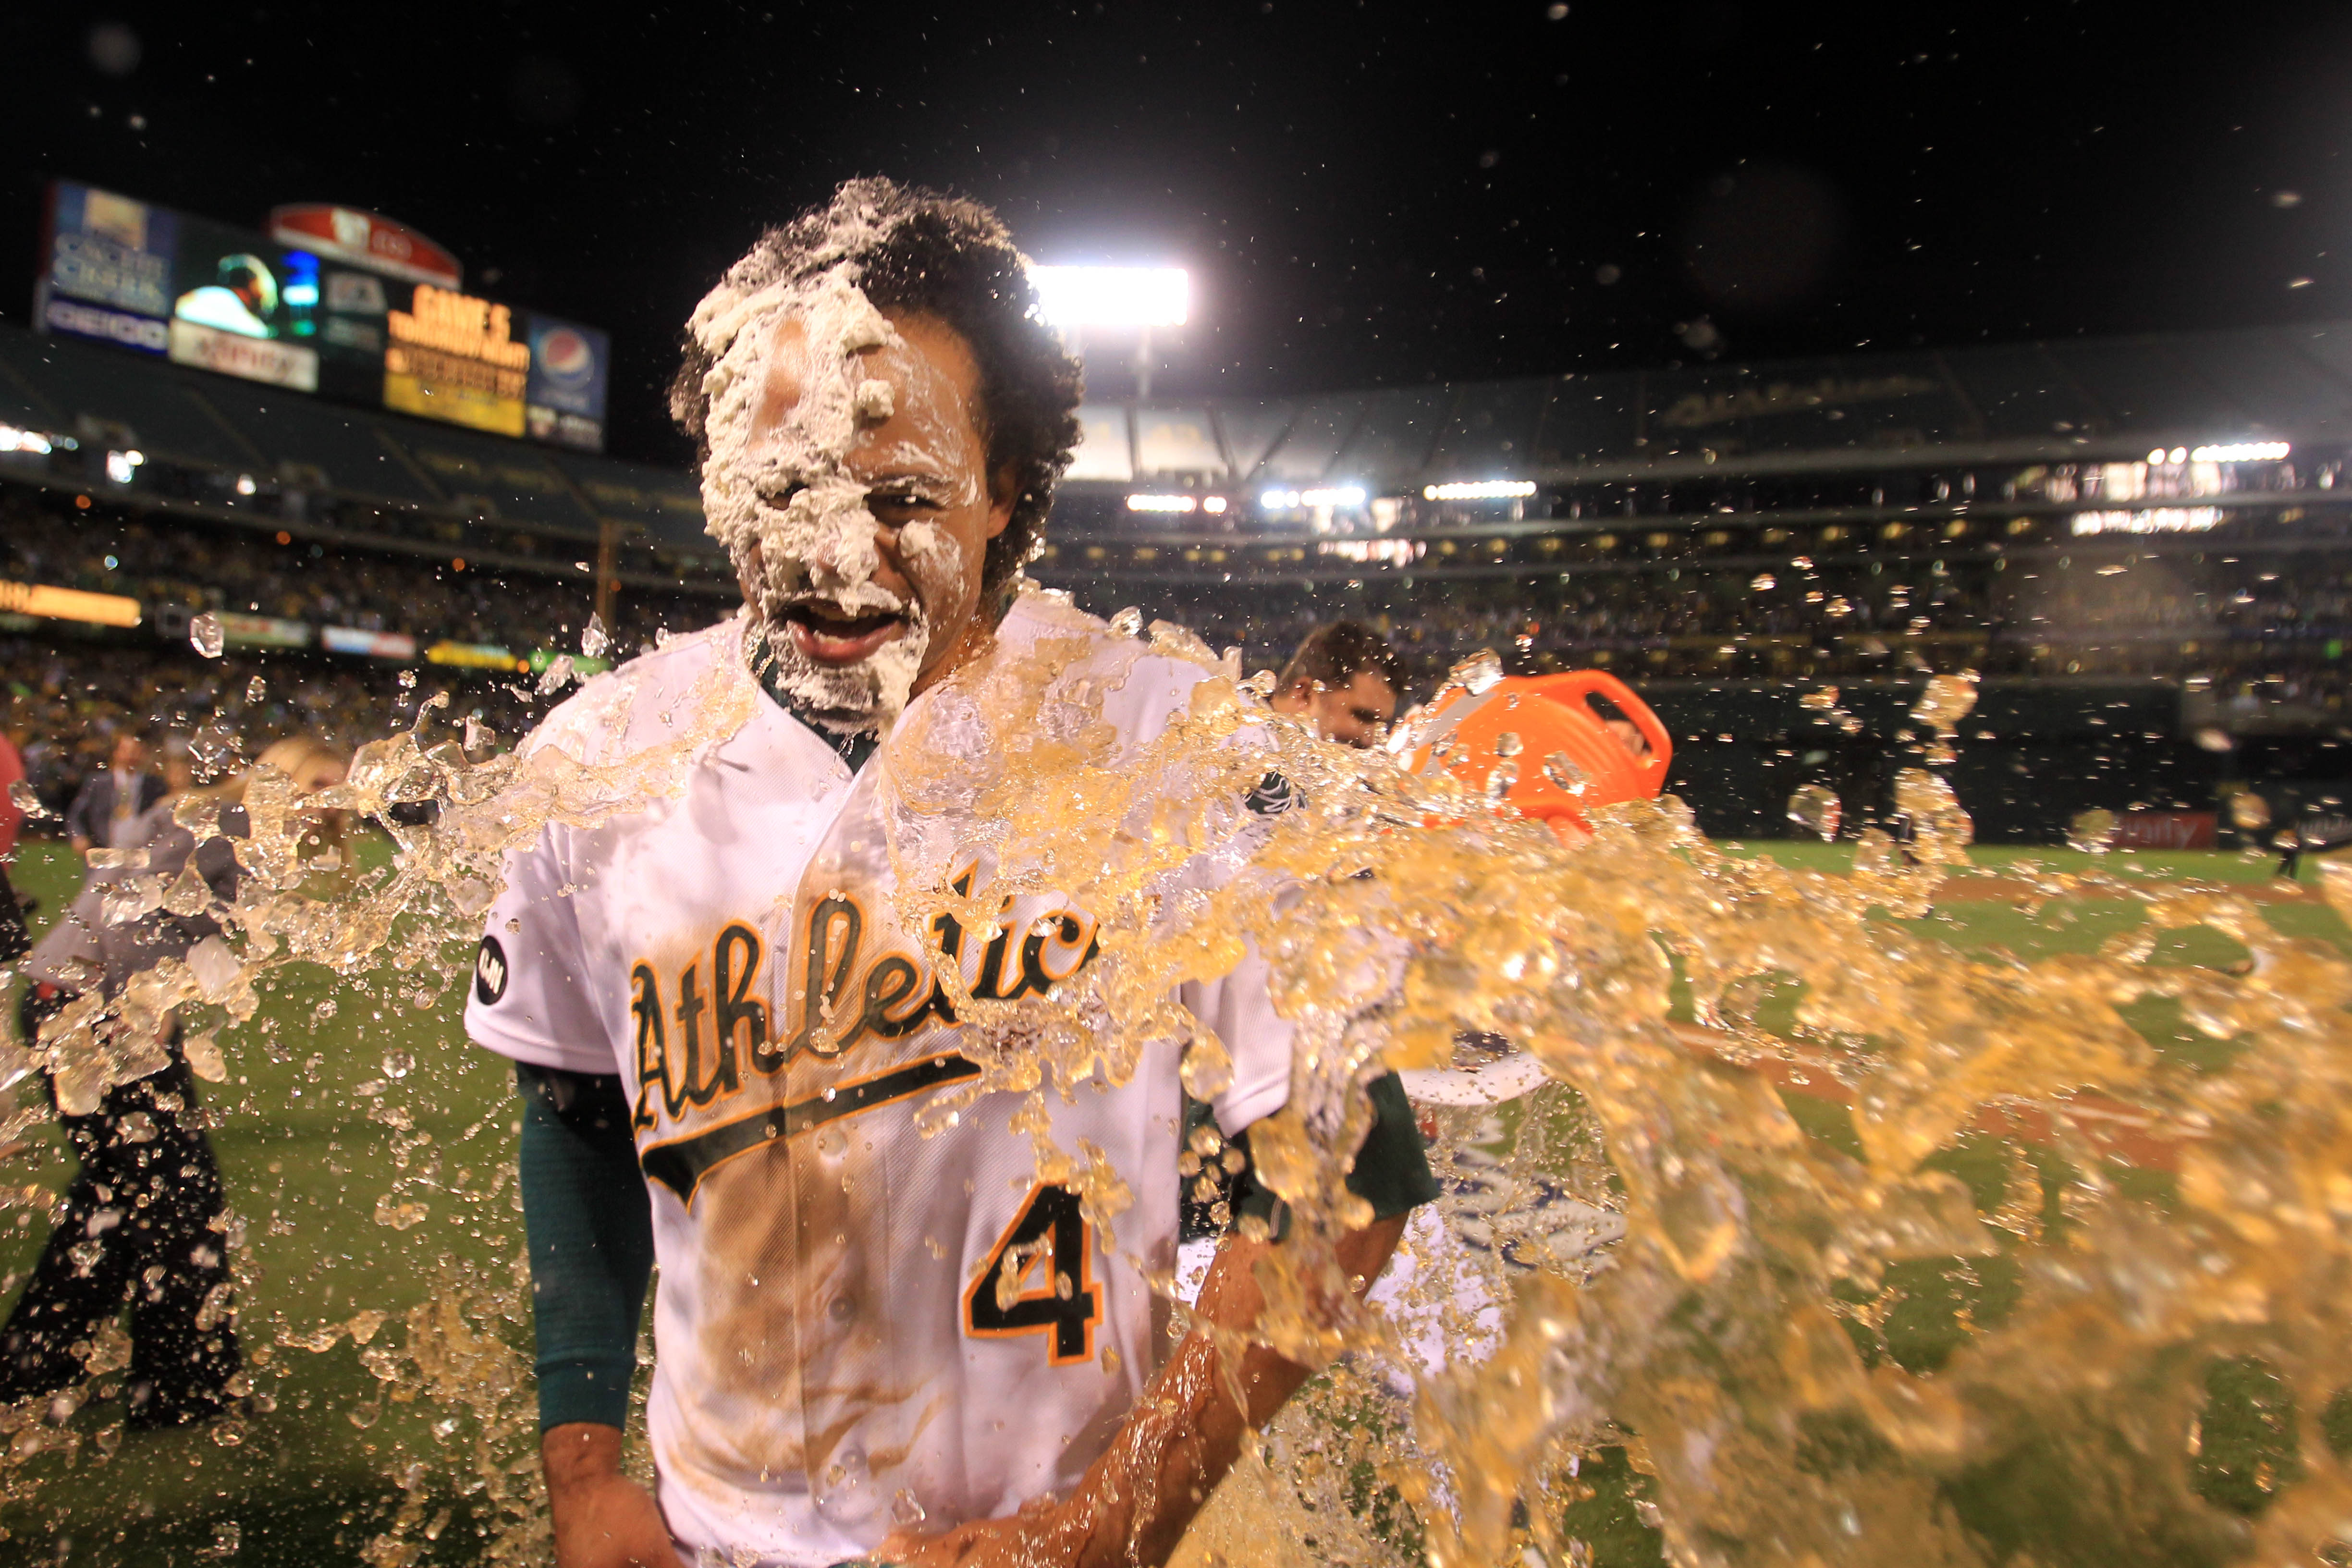 Oakland Athletics' Coco Crisp (4) smiles with his face covered with the ritual whipped cream pie as he gets doused with gatorade during the celebration on his walk-off single against the Detroit Tigers in the ninth inning of their Game 4 of the American L